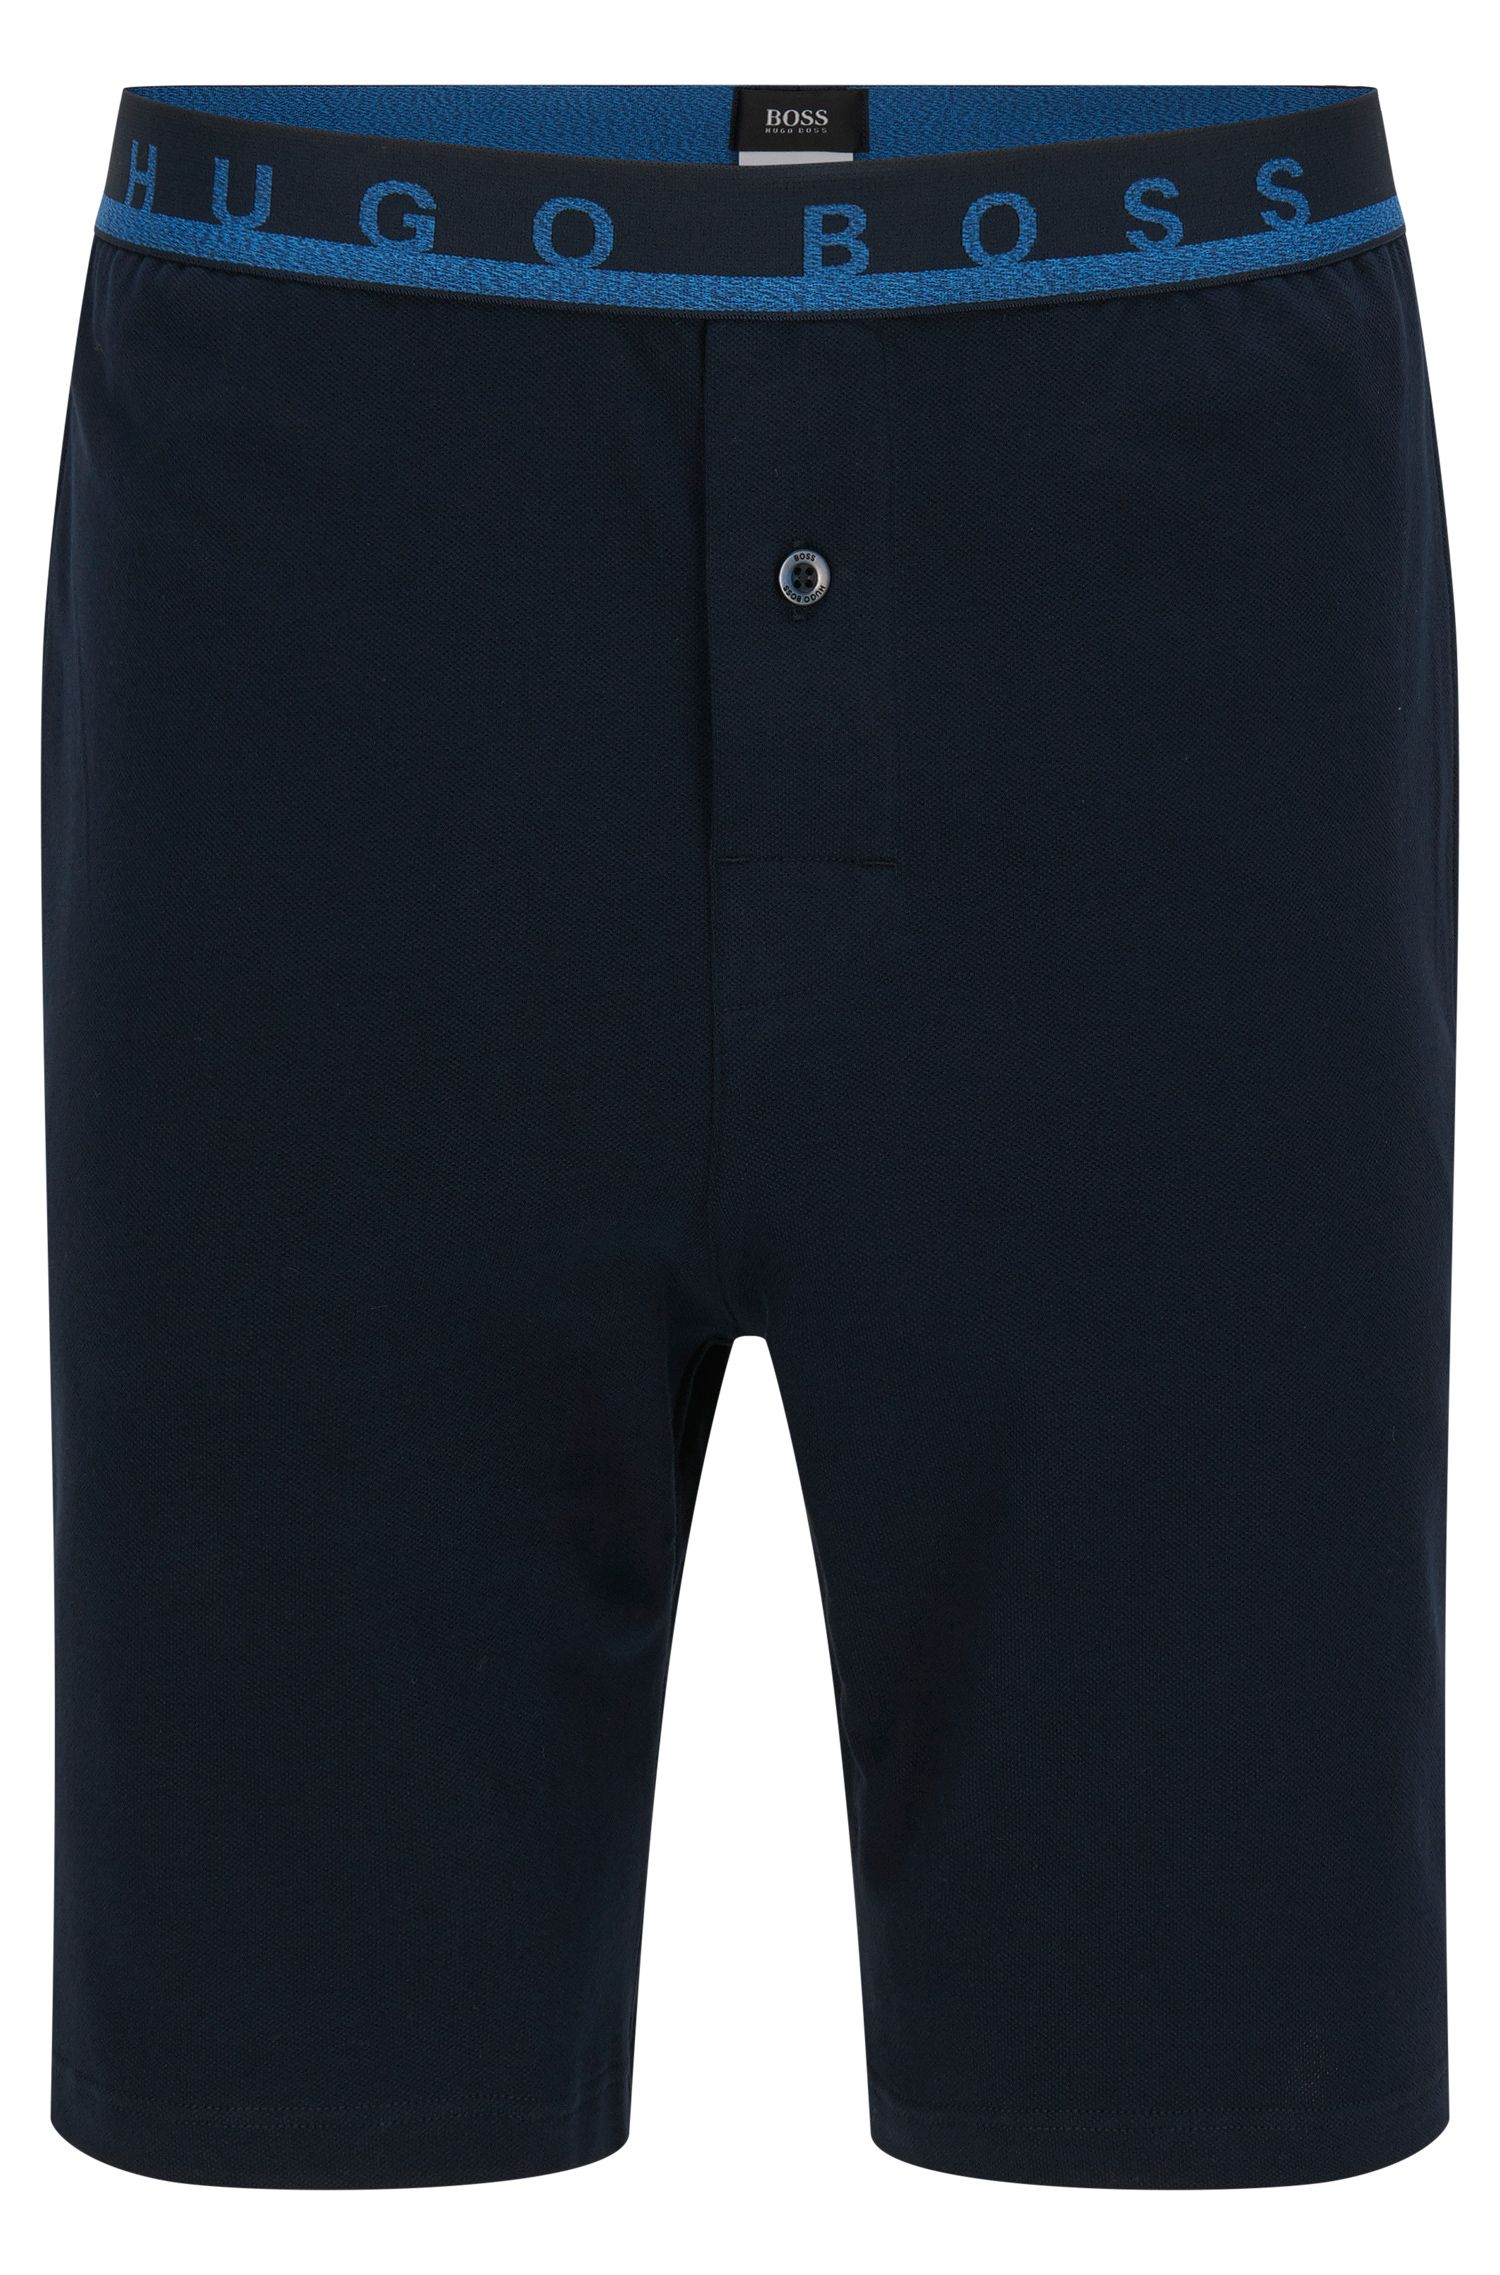 Shorts in stretch cotton with an elastic waistband: 'Short Pant EW'